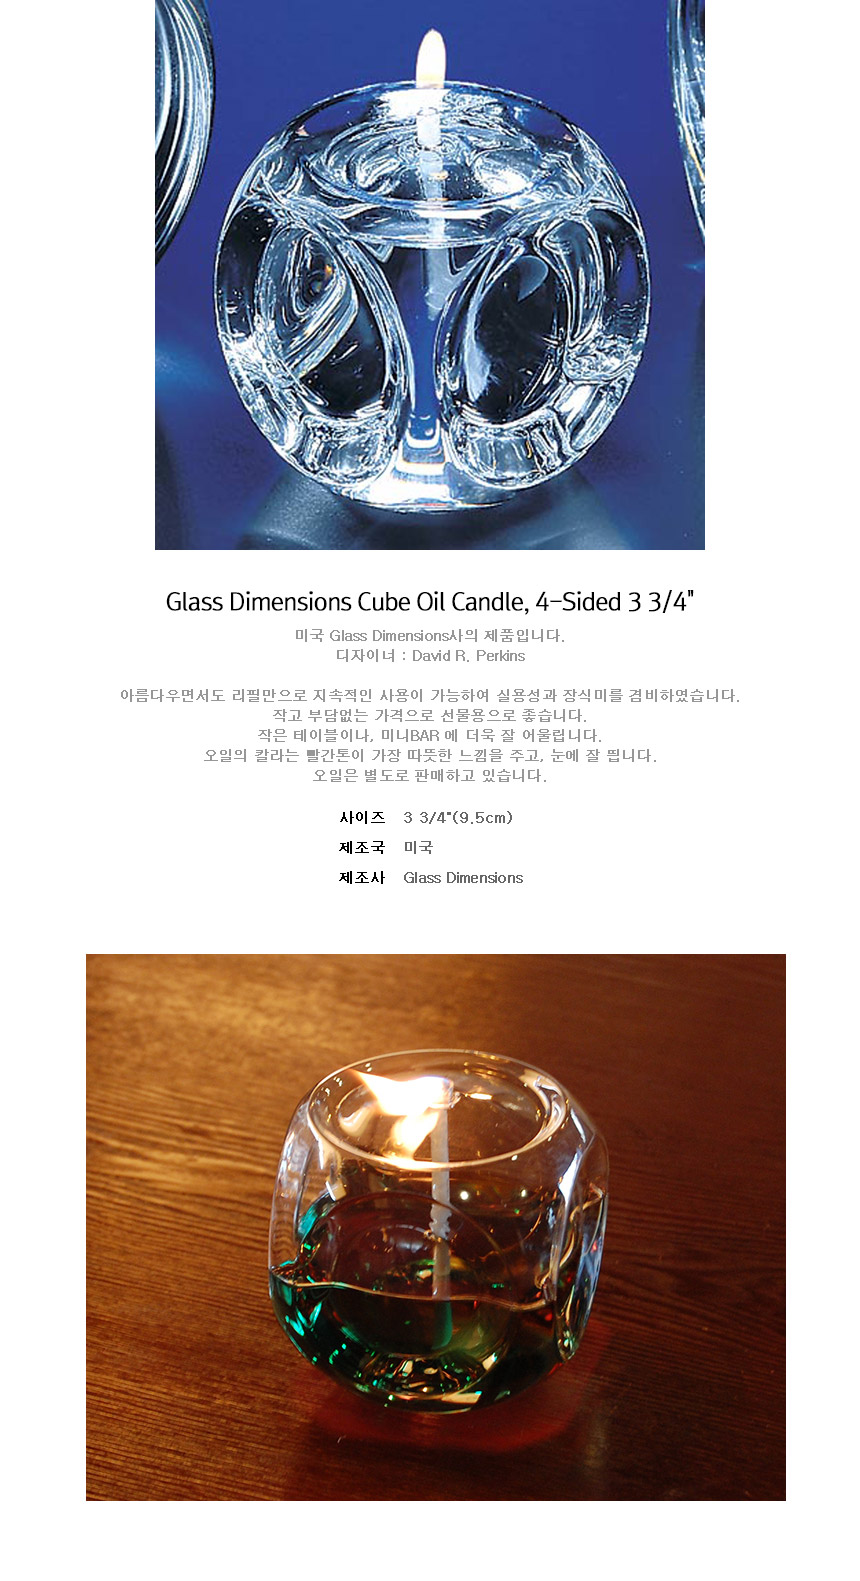 램프플러스 Glass Dimensions Cube Oil Candle 4-Sided